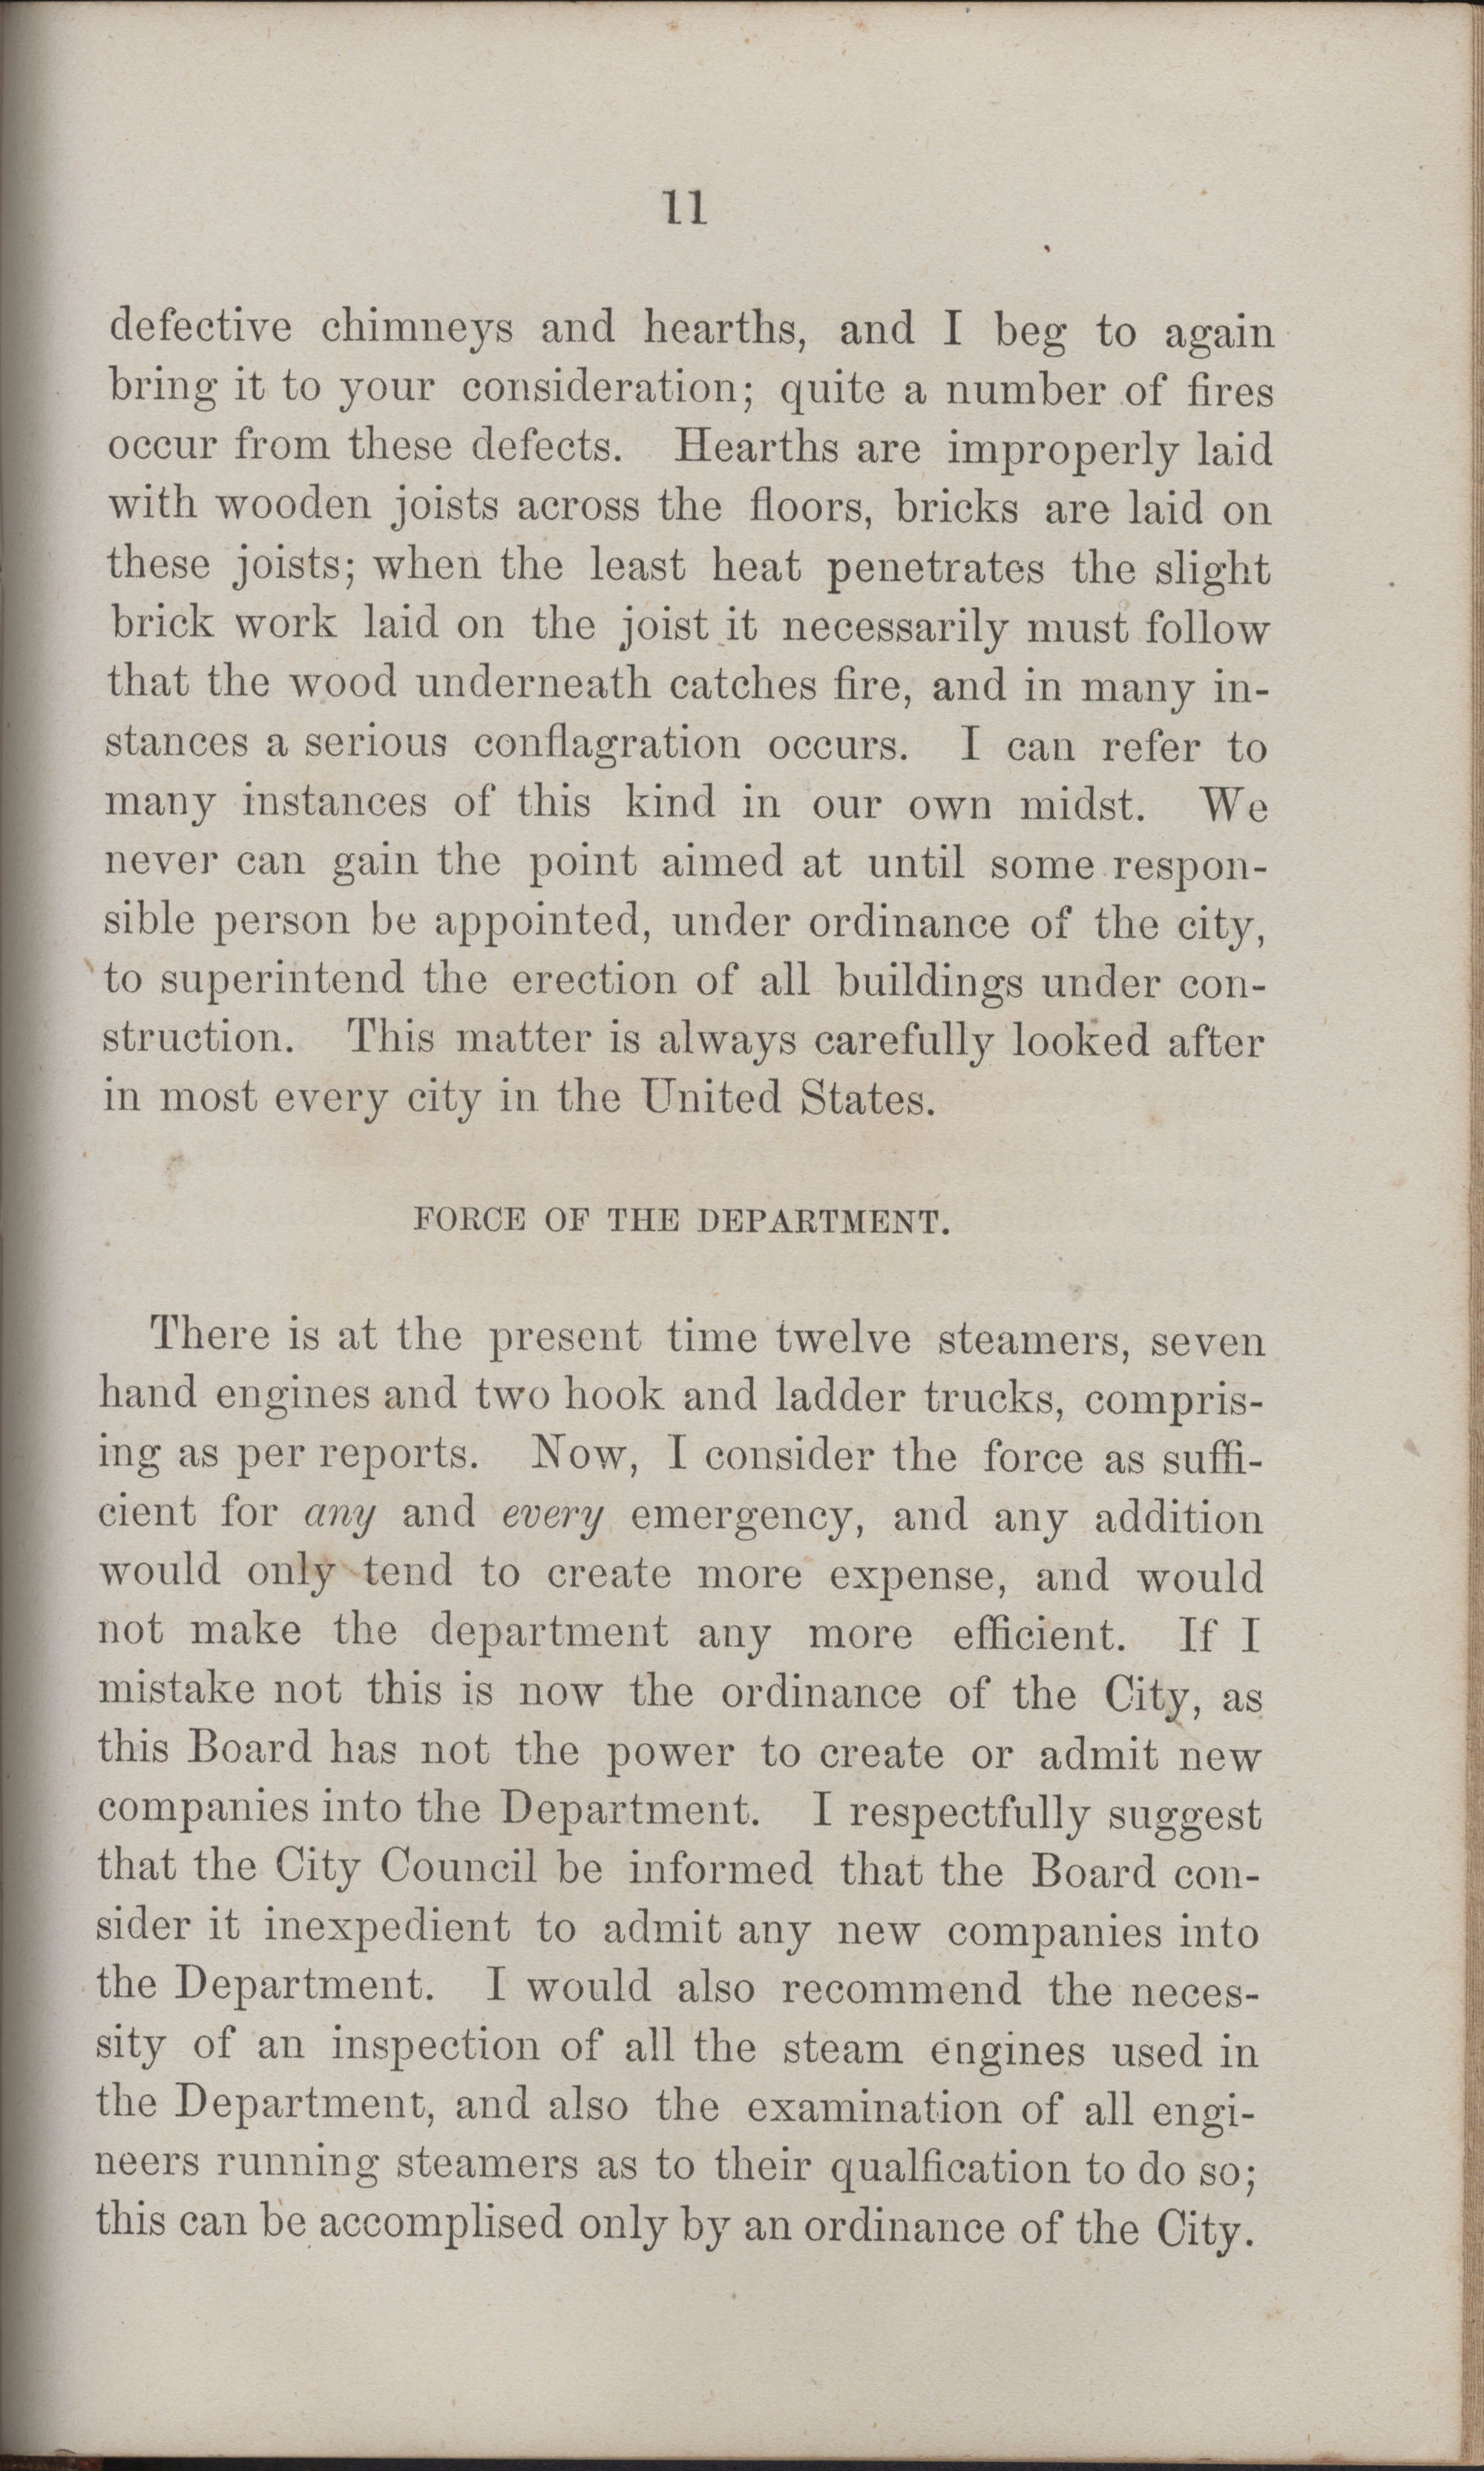 Annual Report of the Chief of the Fire Department of the City of Charleston, page 406